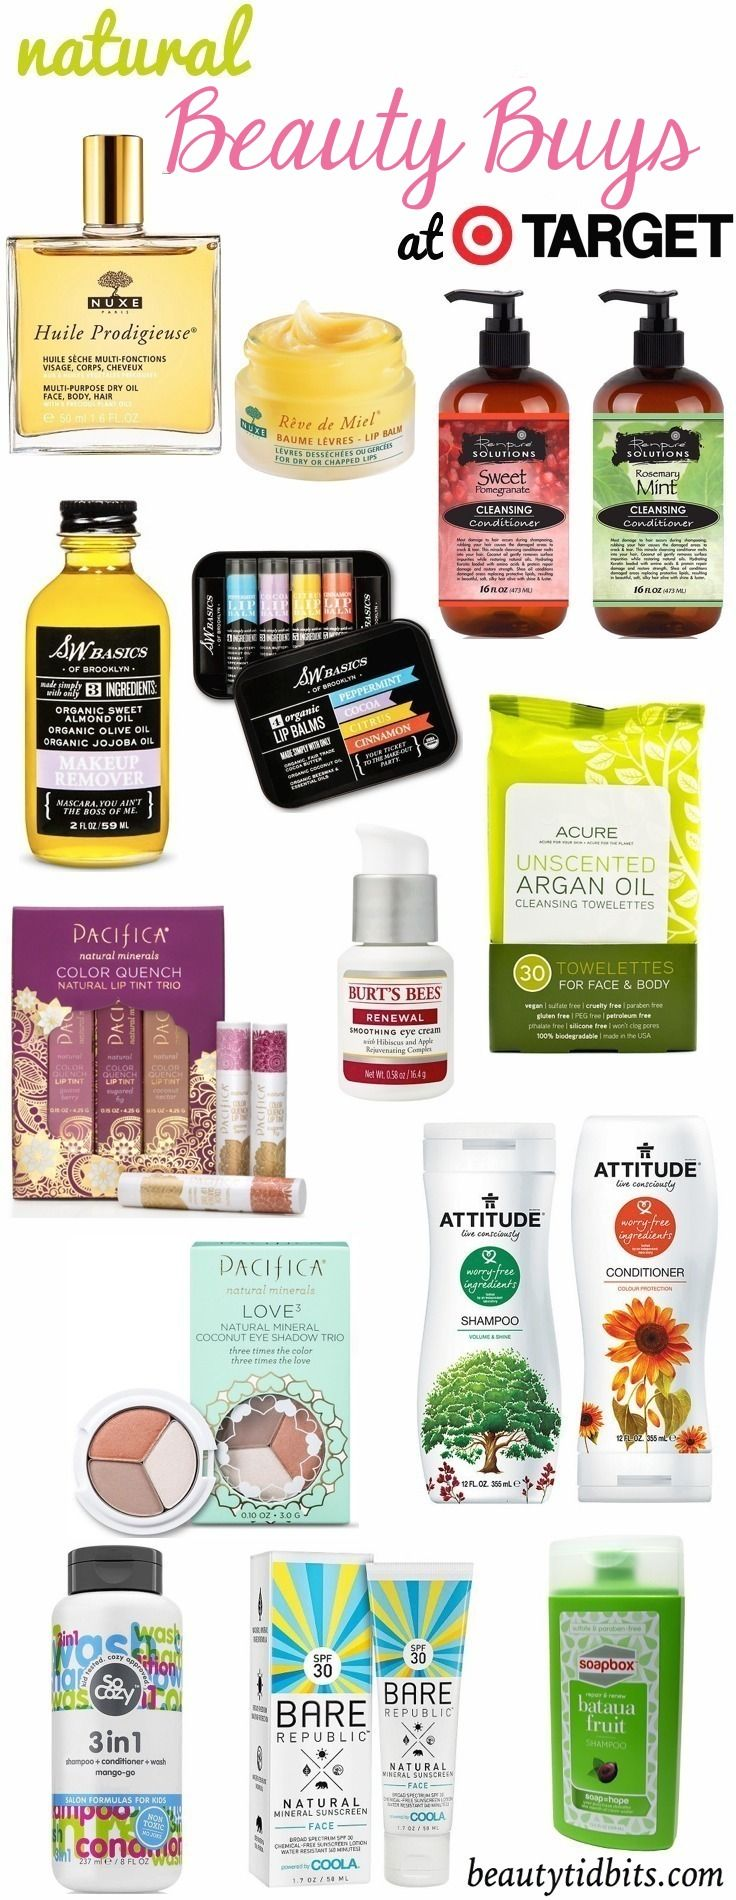 Natural Beauty Products at Target